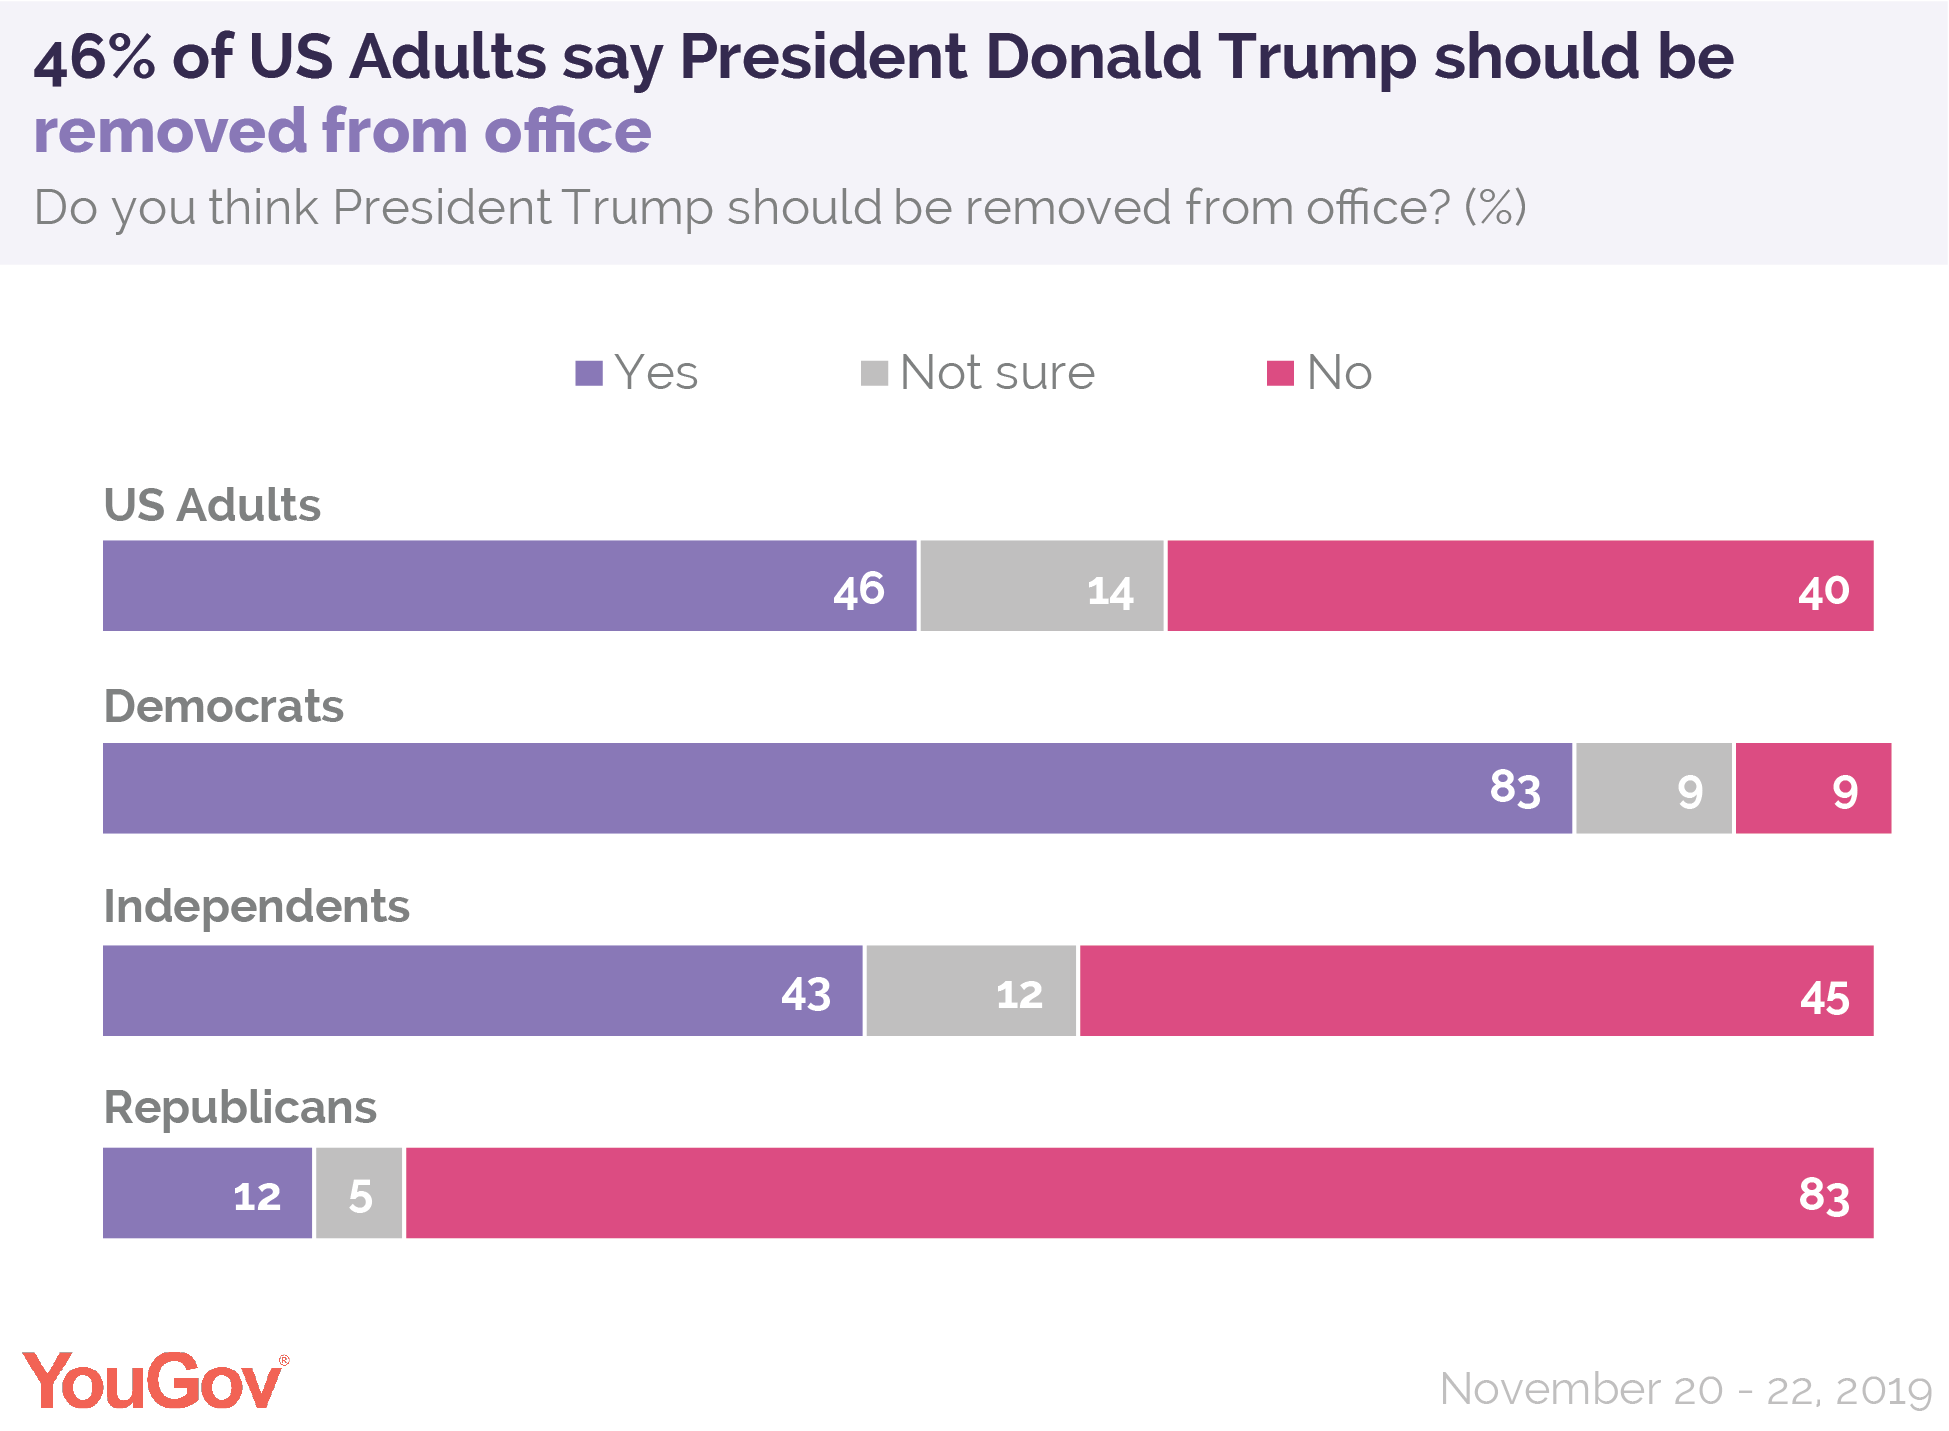 46% of US Adults say President Donald Trump should be removed from office